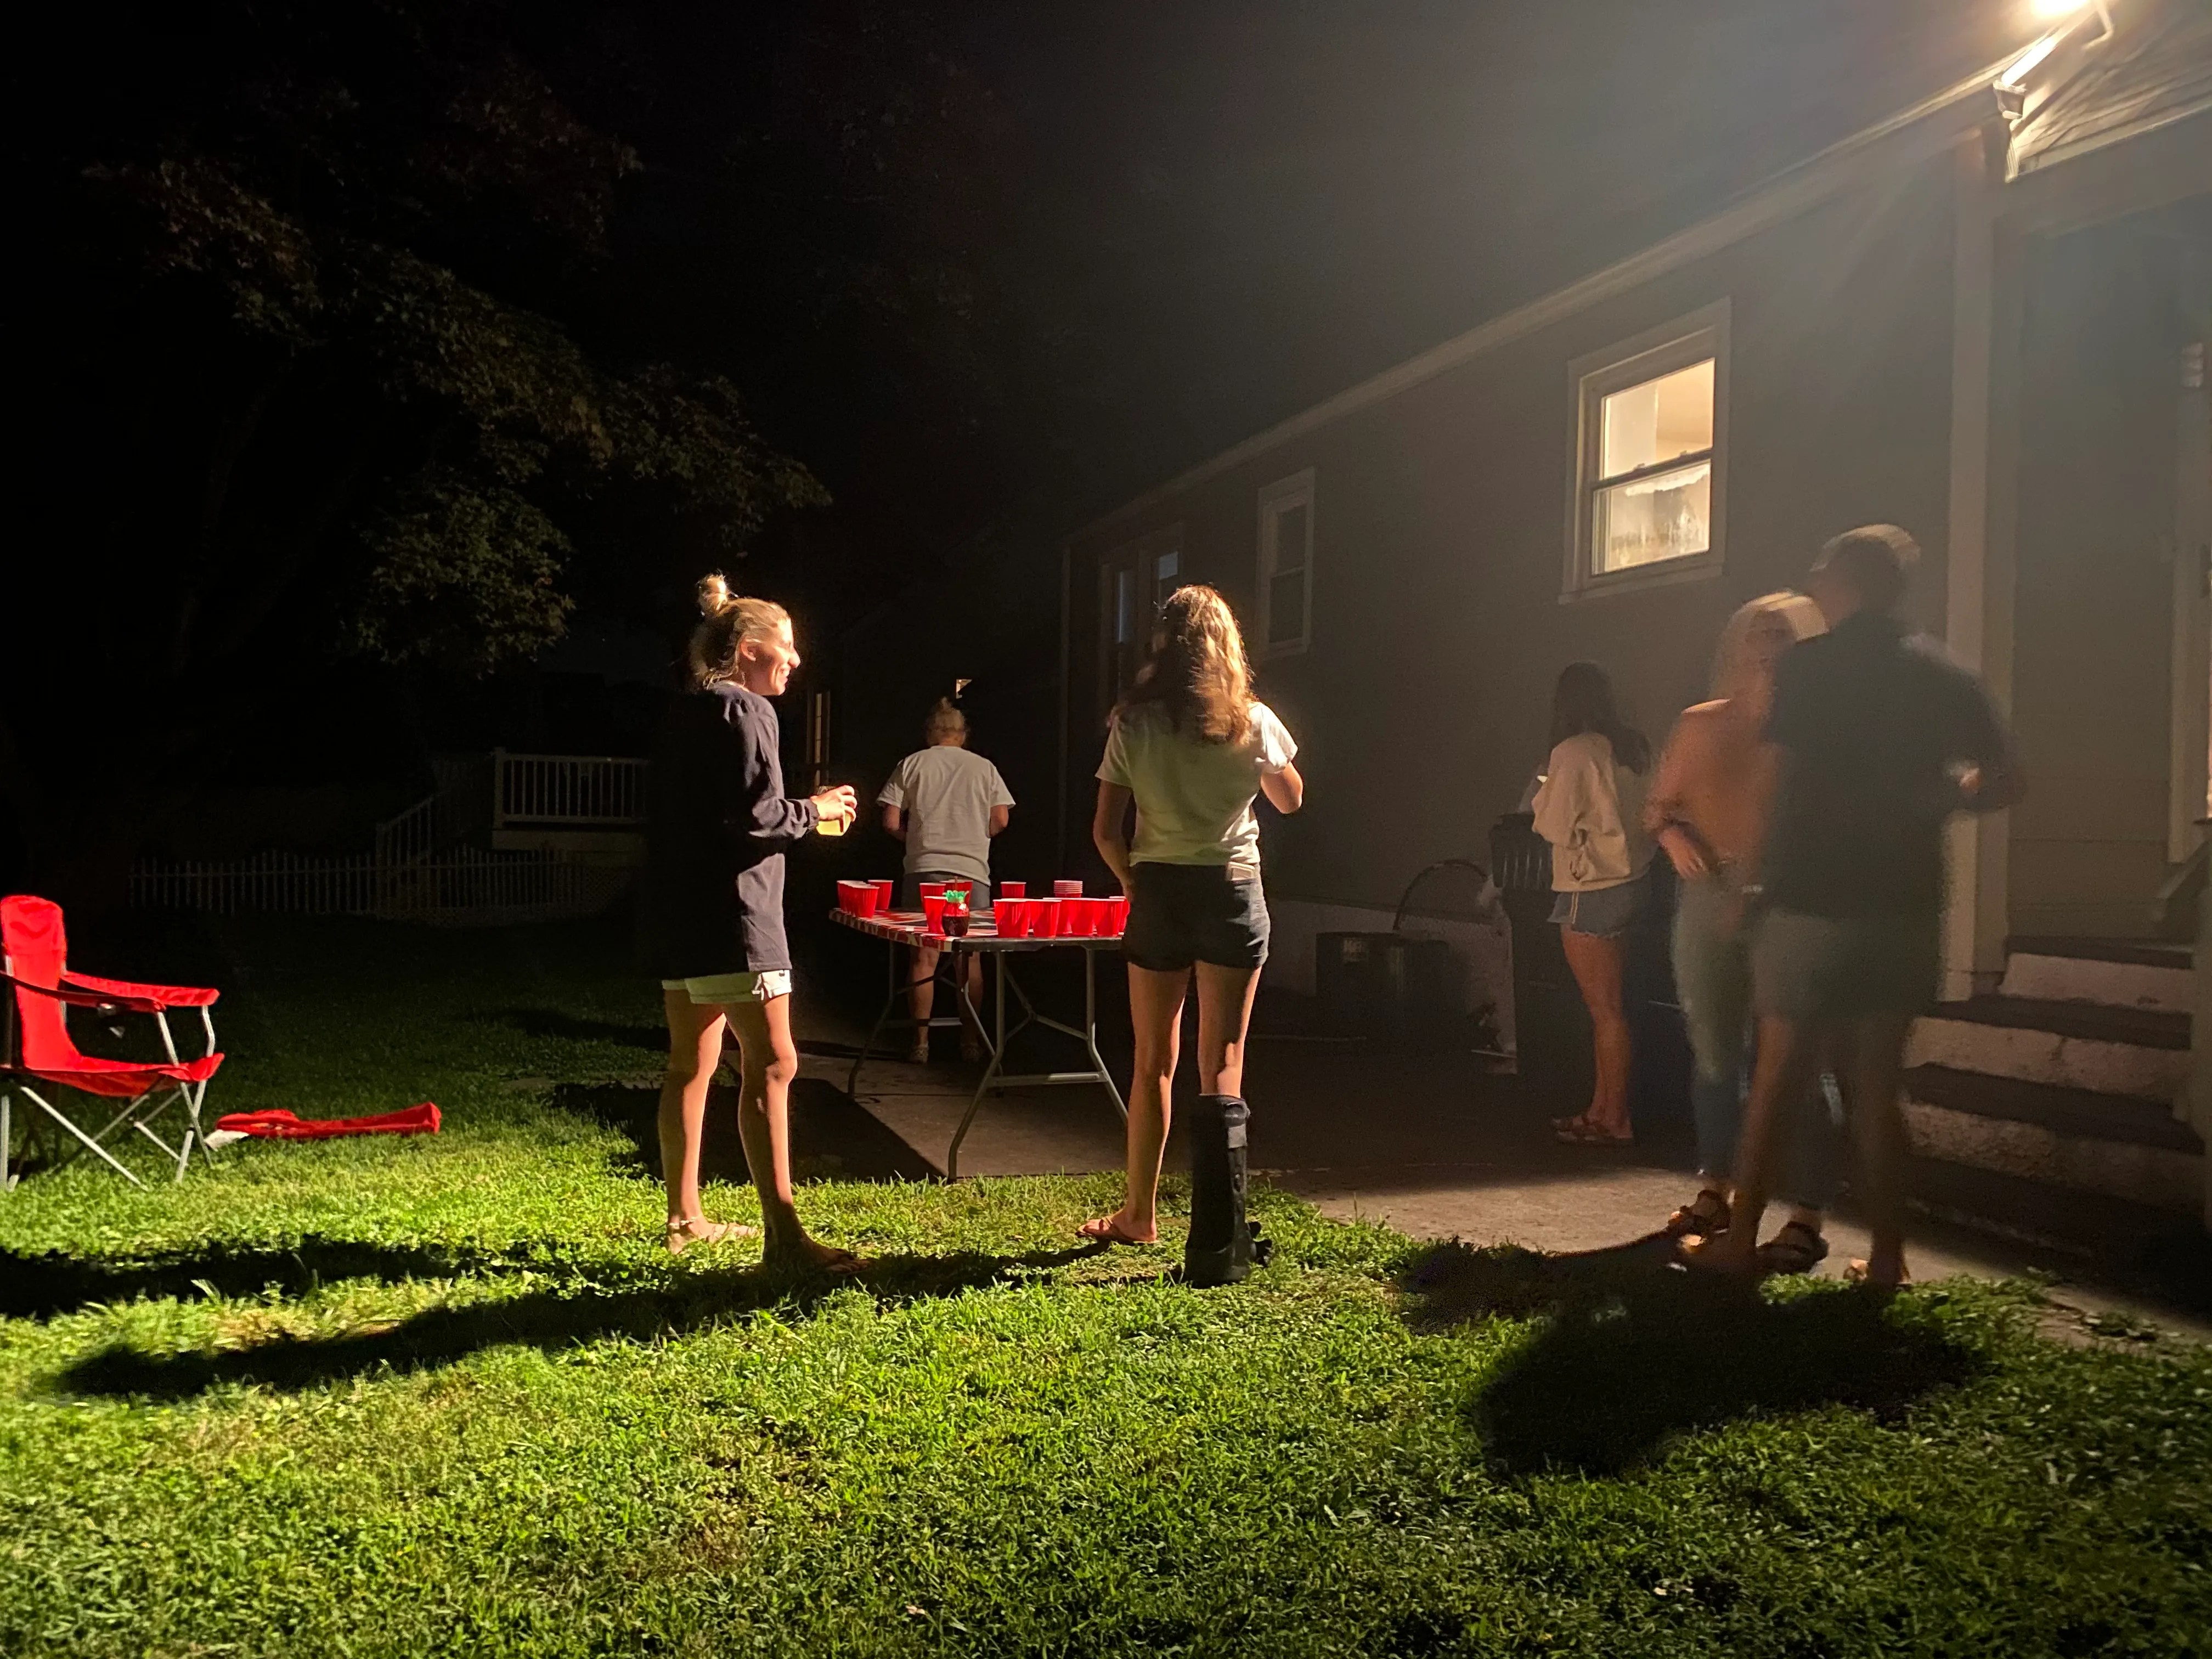 People congregate Friday at a party near the Fairfield University campus in Connecticut.